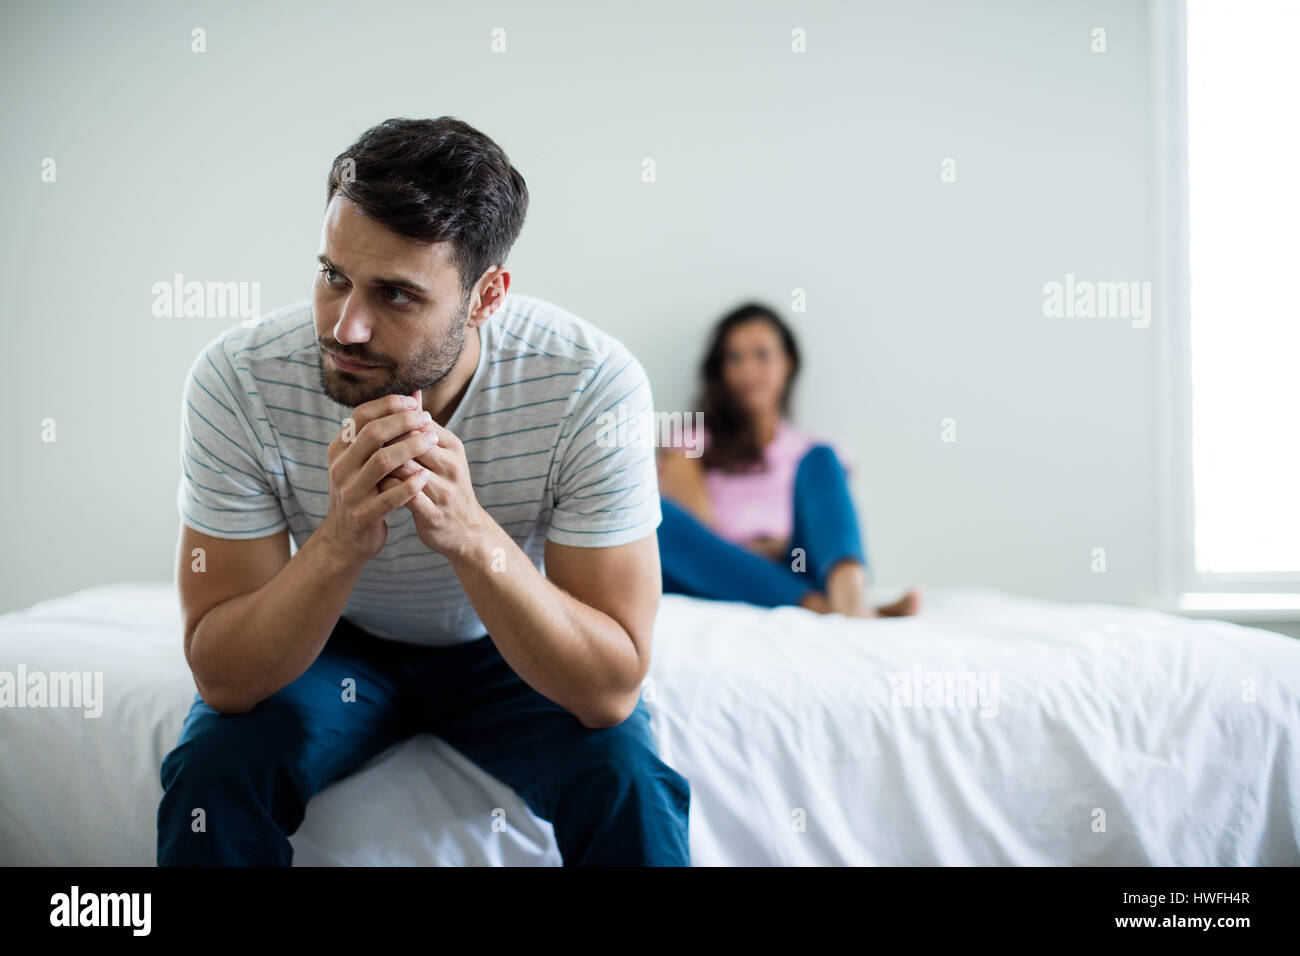 Couple ignoring each other in bedroom at home - Stock Image